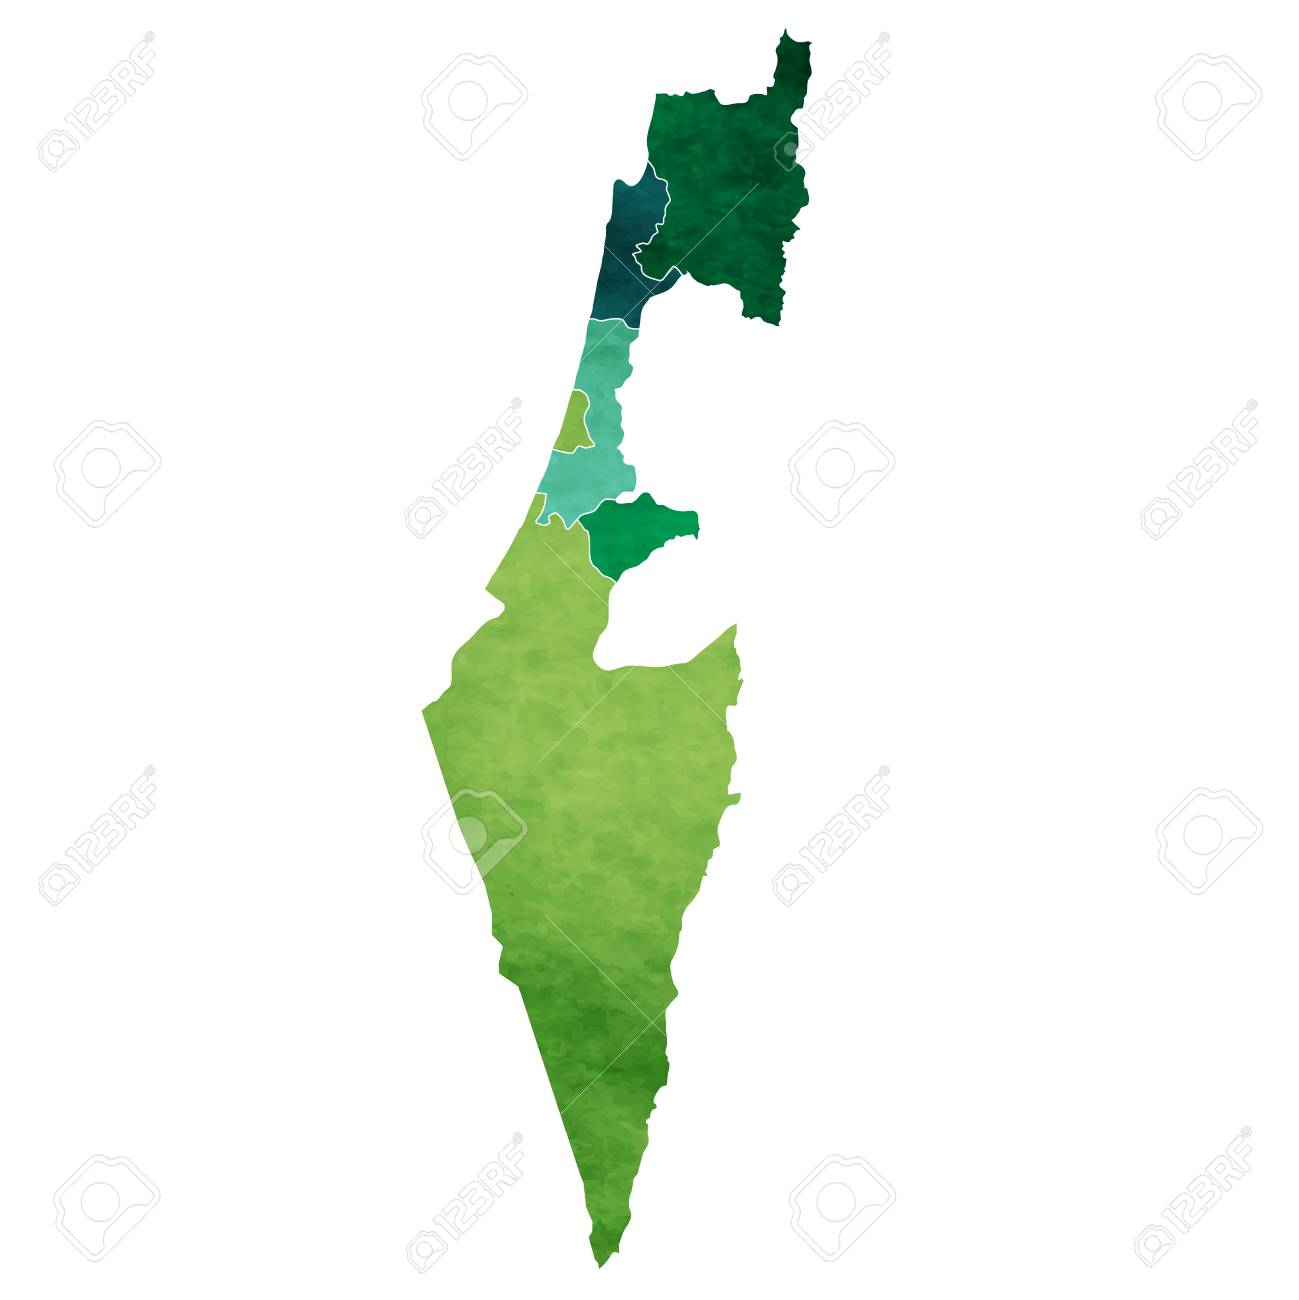 Israel World map country icon